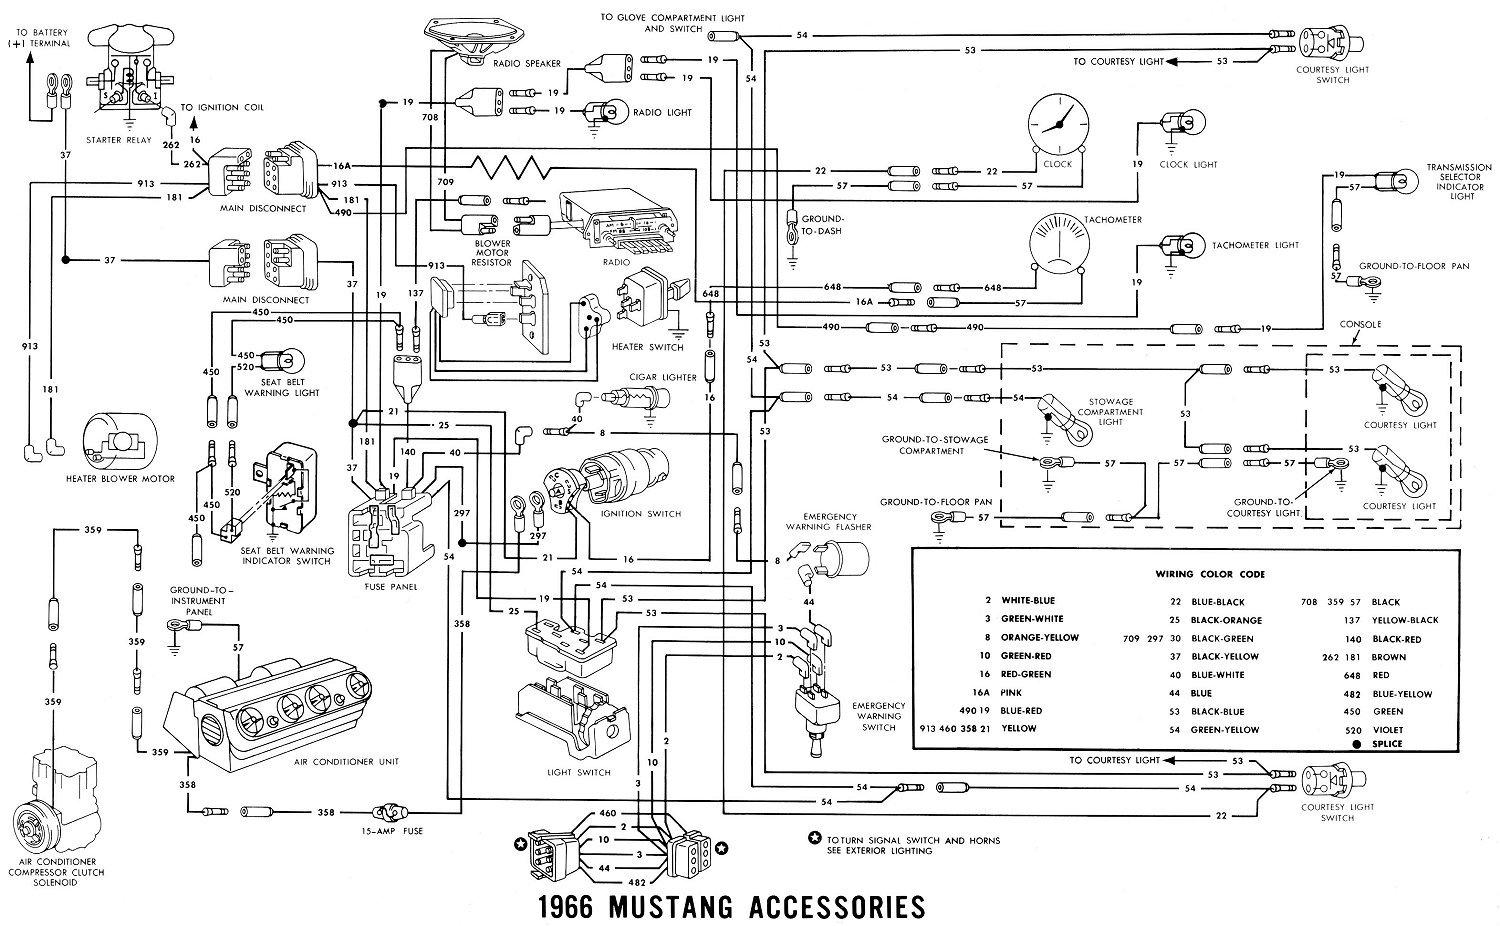 1994 ford mustang radio wiring diagram pdf with Wiring on RepairGuideContent furthermore 2000 Ford Focus Cooling Fan Wiring Diagram also RepairGuideContent furthermore Wiring Diagram 1974 Ford Accessories likewise respond.